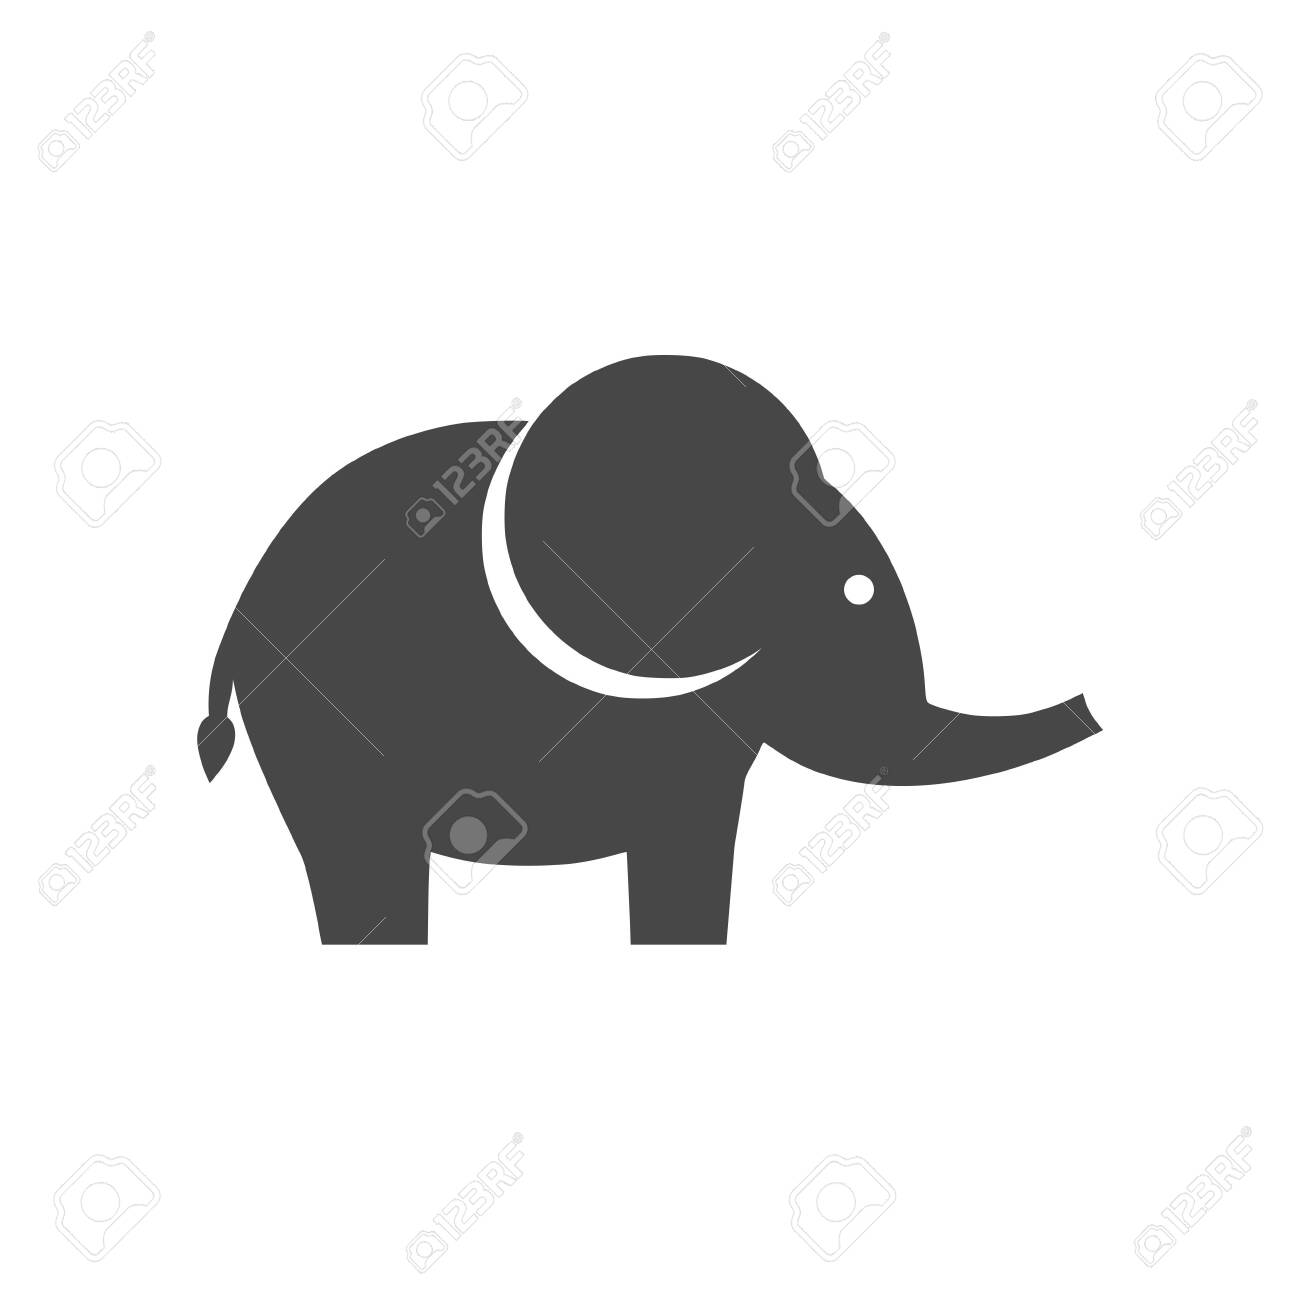 cute little one baby elephant icon royalty free cliparts vectors and stock illustration image 138275969 123rf com